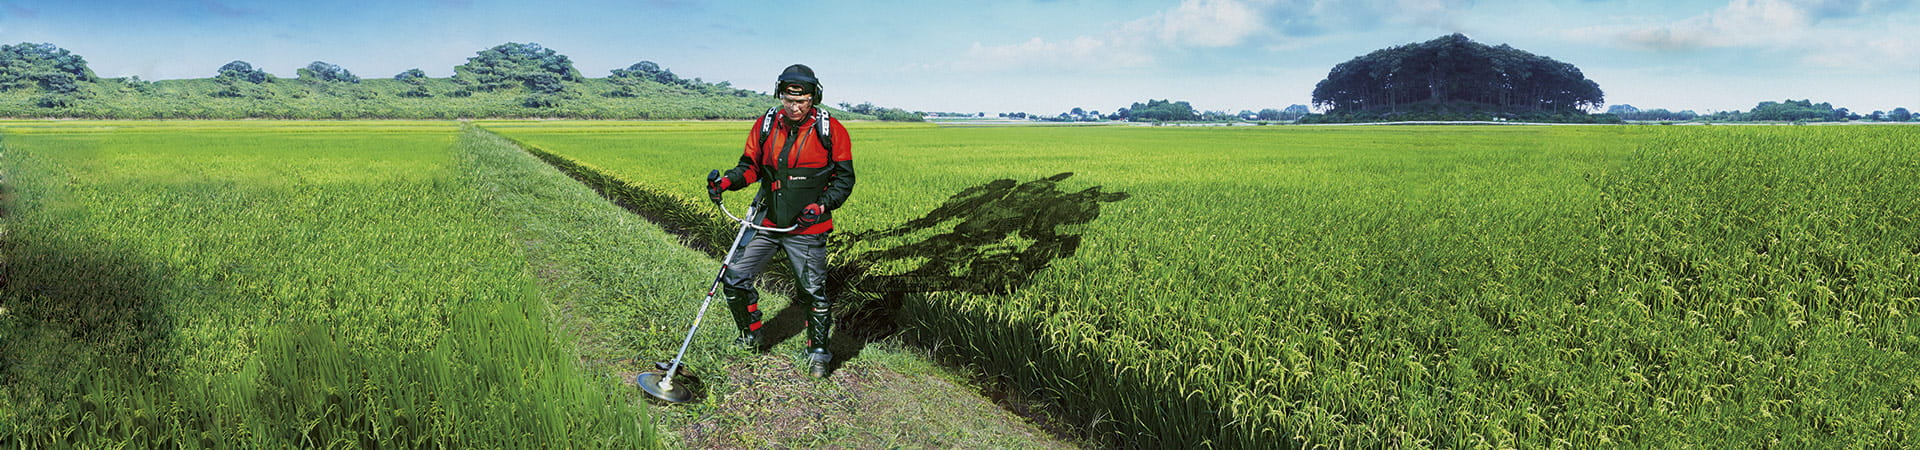 Man cutting grass with Zenoah brushcutter